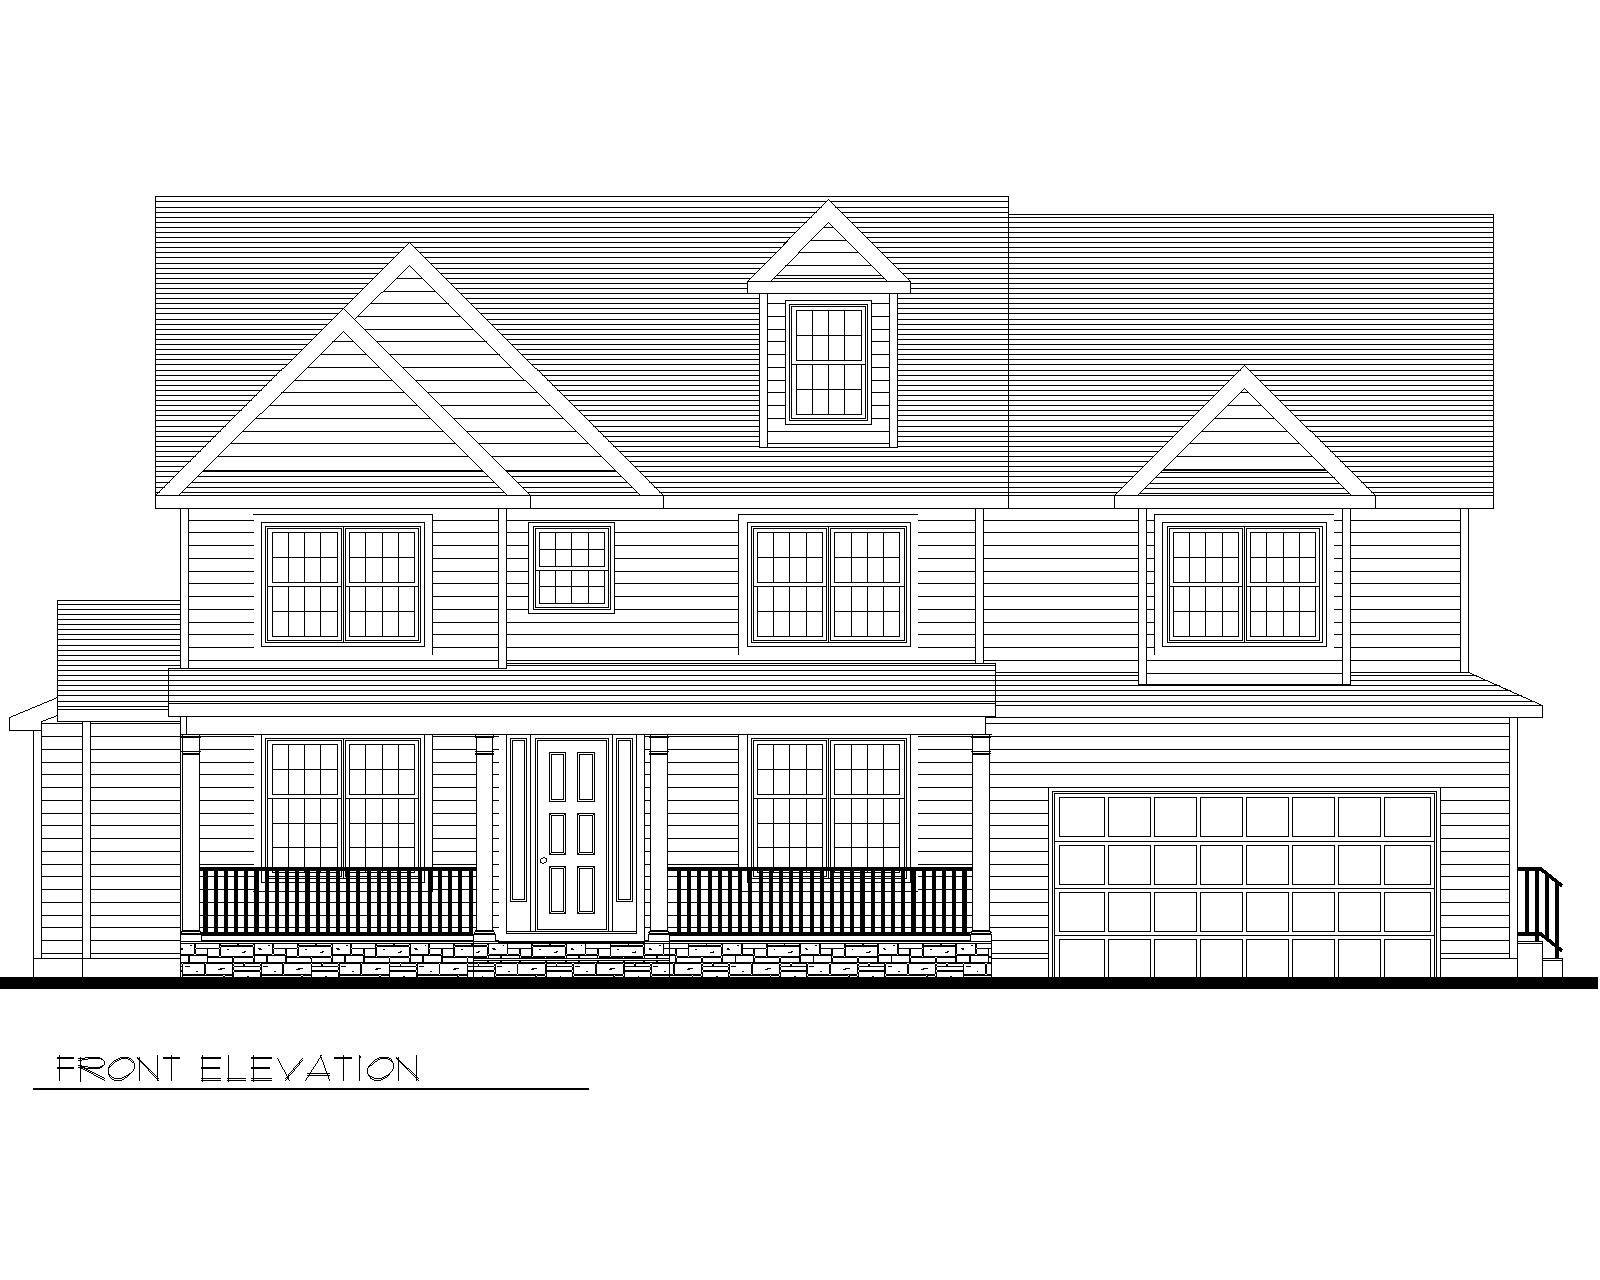 39 Carol Marketing Drawings Front Elevation